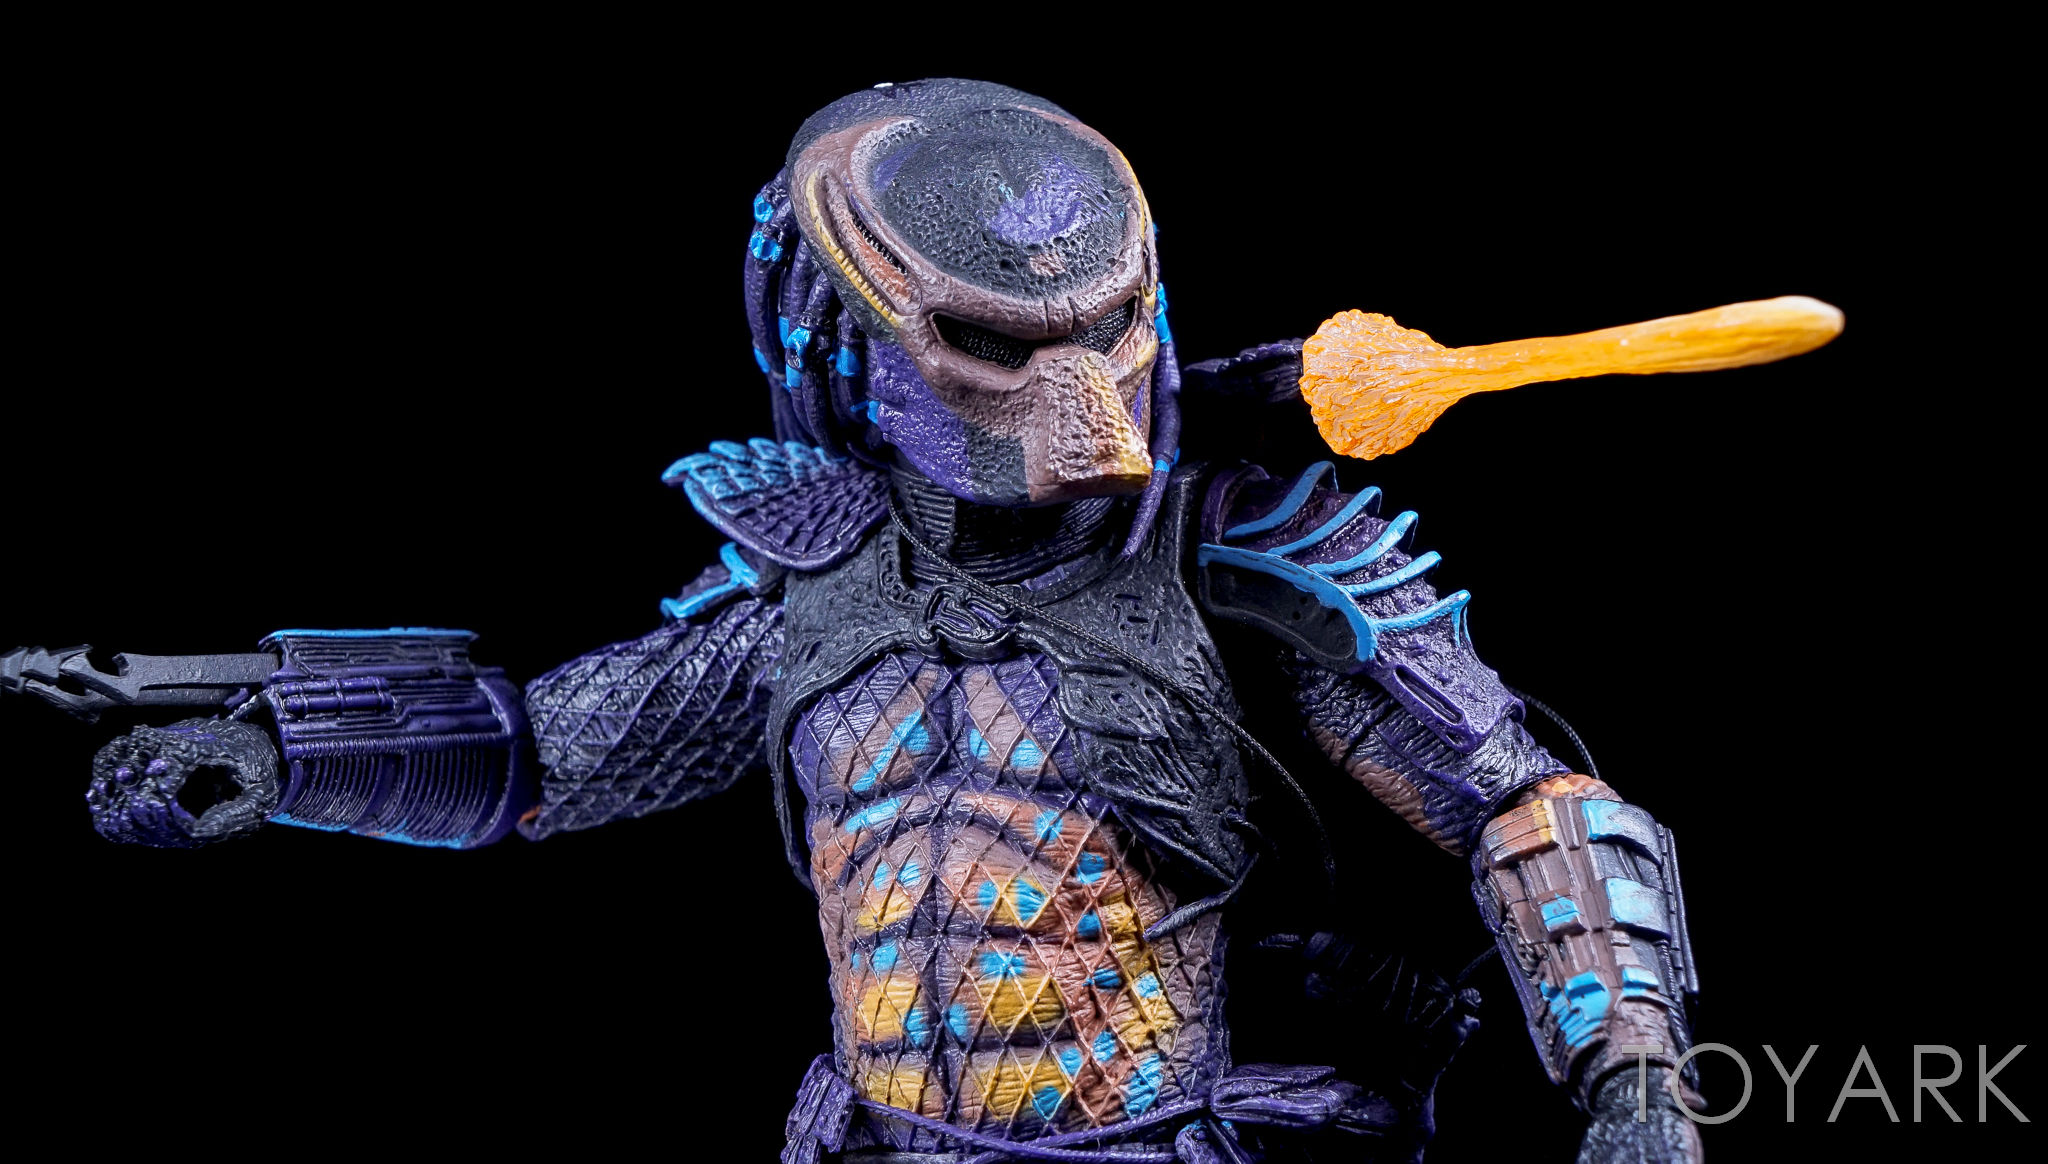 http://news.toyark.com/wp-content/uploads/sites/4/2016/09/NECA-Predator-Accessory-Pack-031.jpg